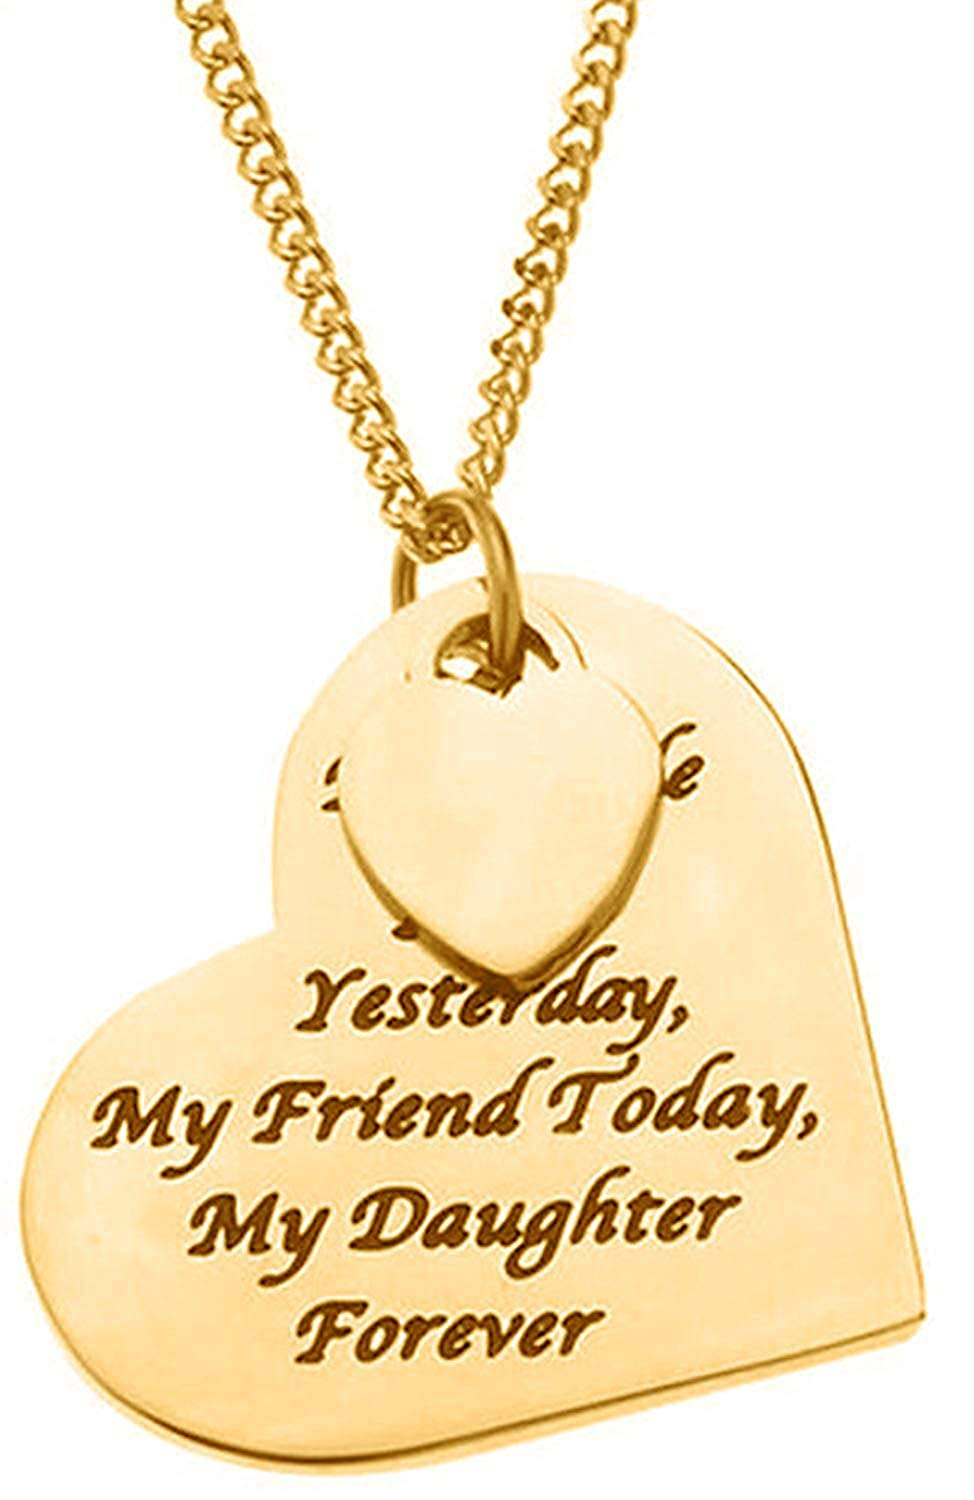 My Little Girl Yesterday My Friend Today My Daughter Forever Heart Pendant Necklace for Women /& Teens Dad GGG Boutique SET-1